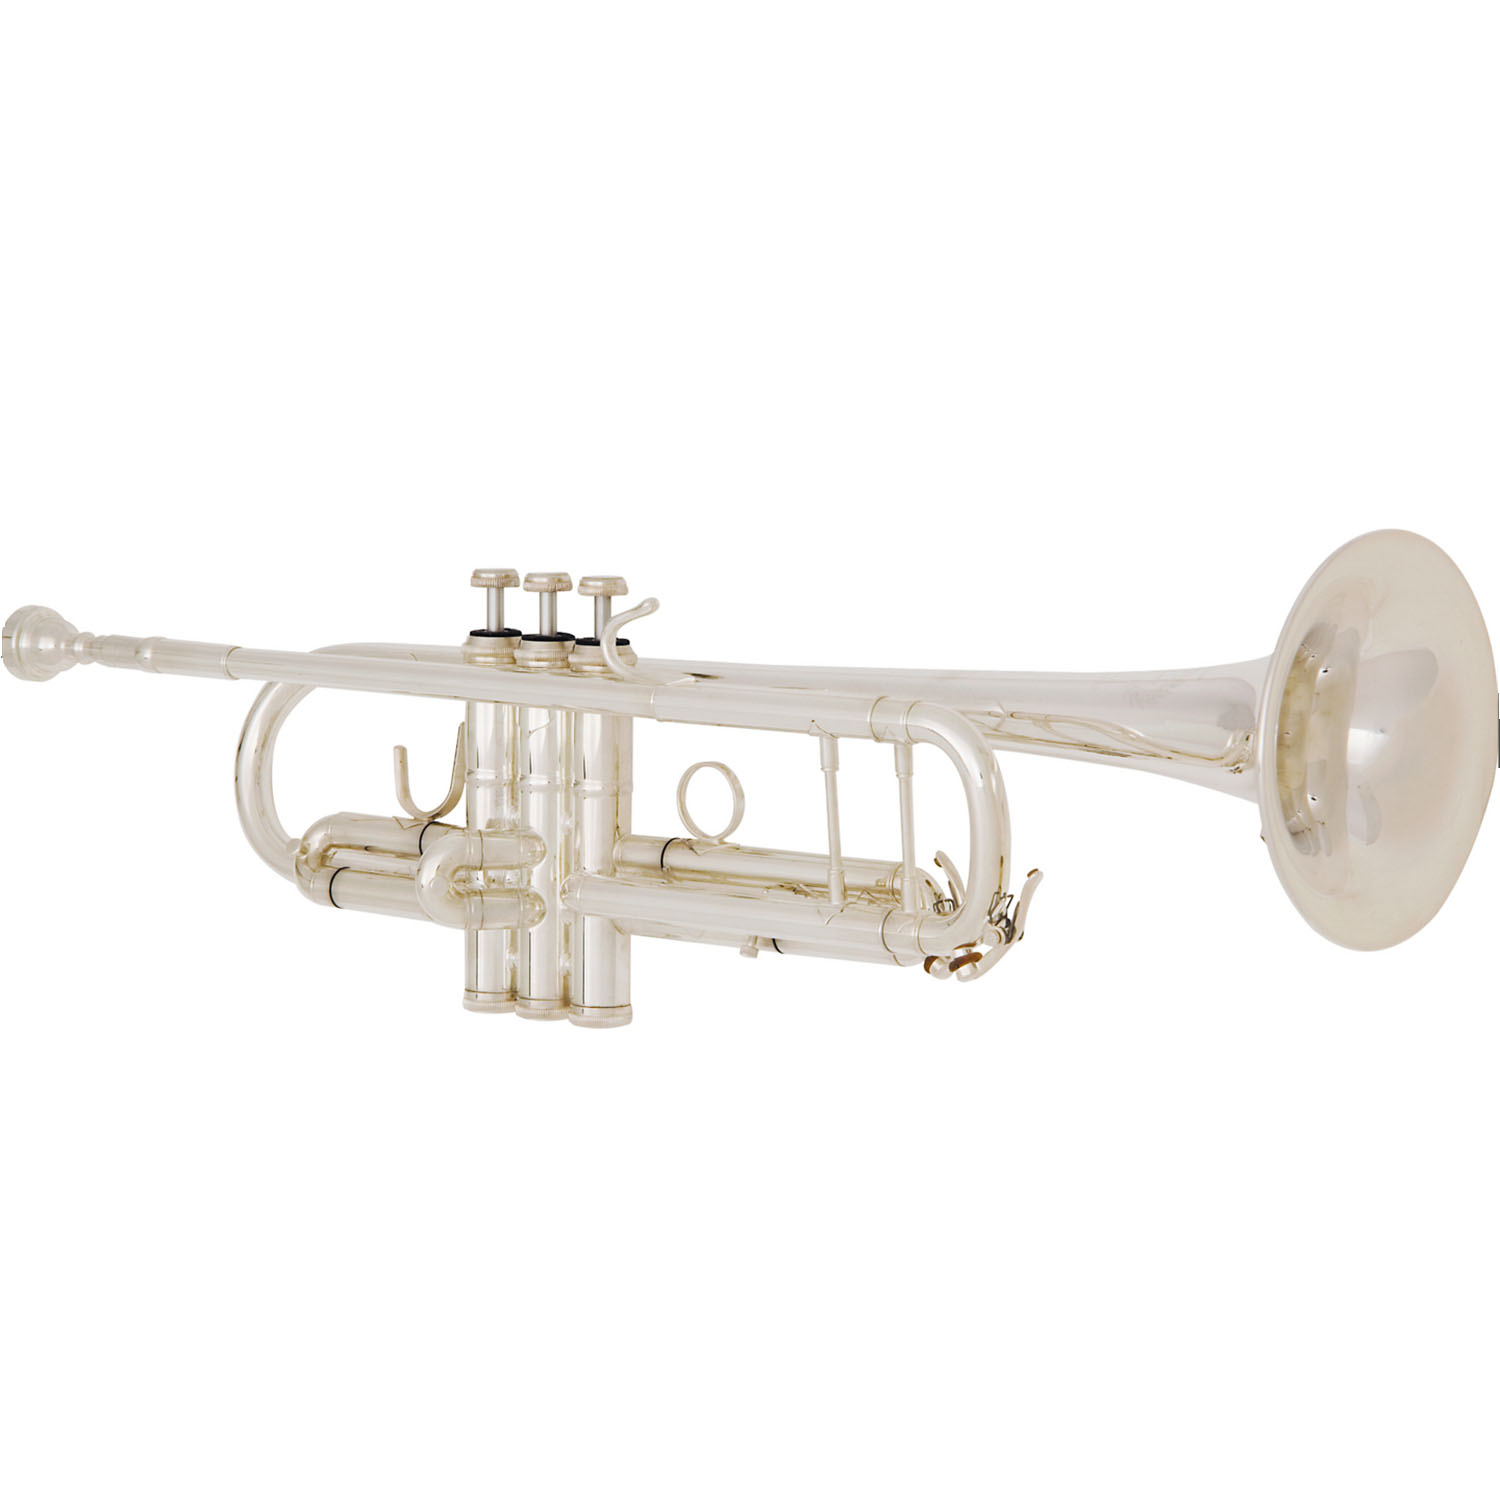 "B&S ""Challenger II"" Professional Bb Trumpet - #37 Bell - Silver Plating"